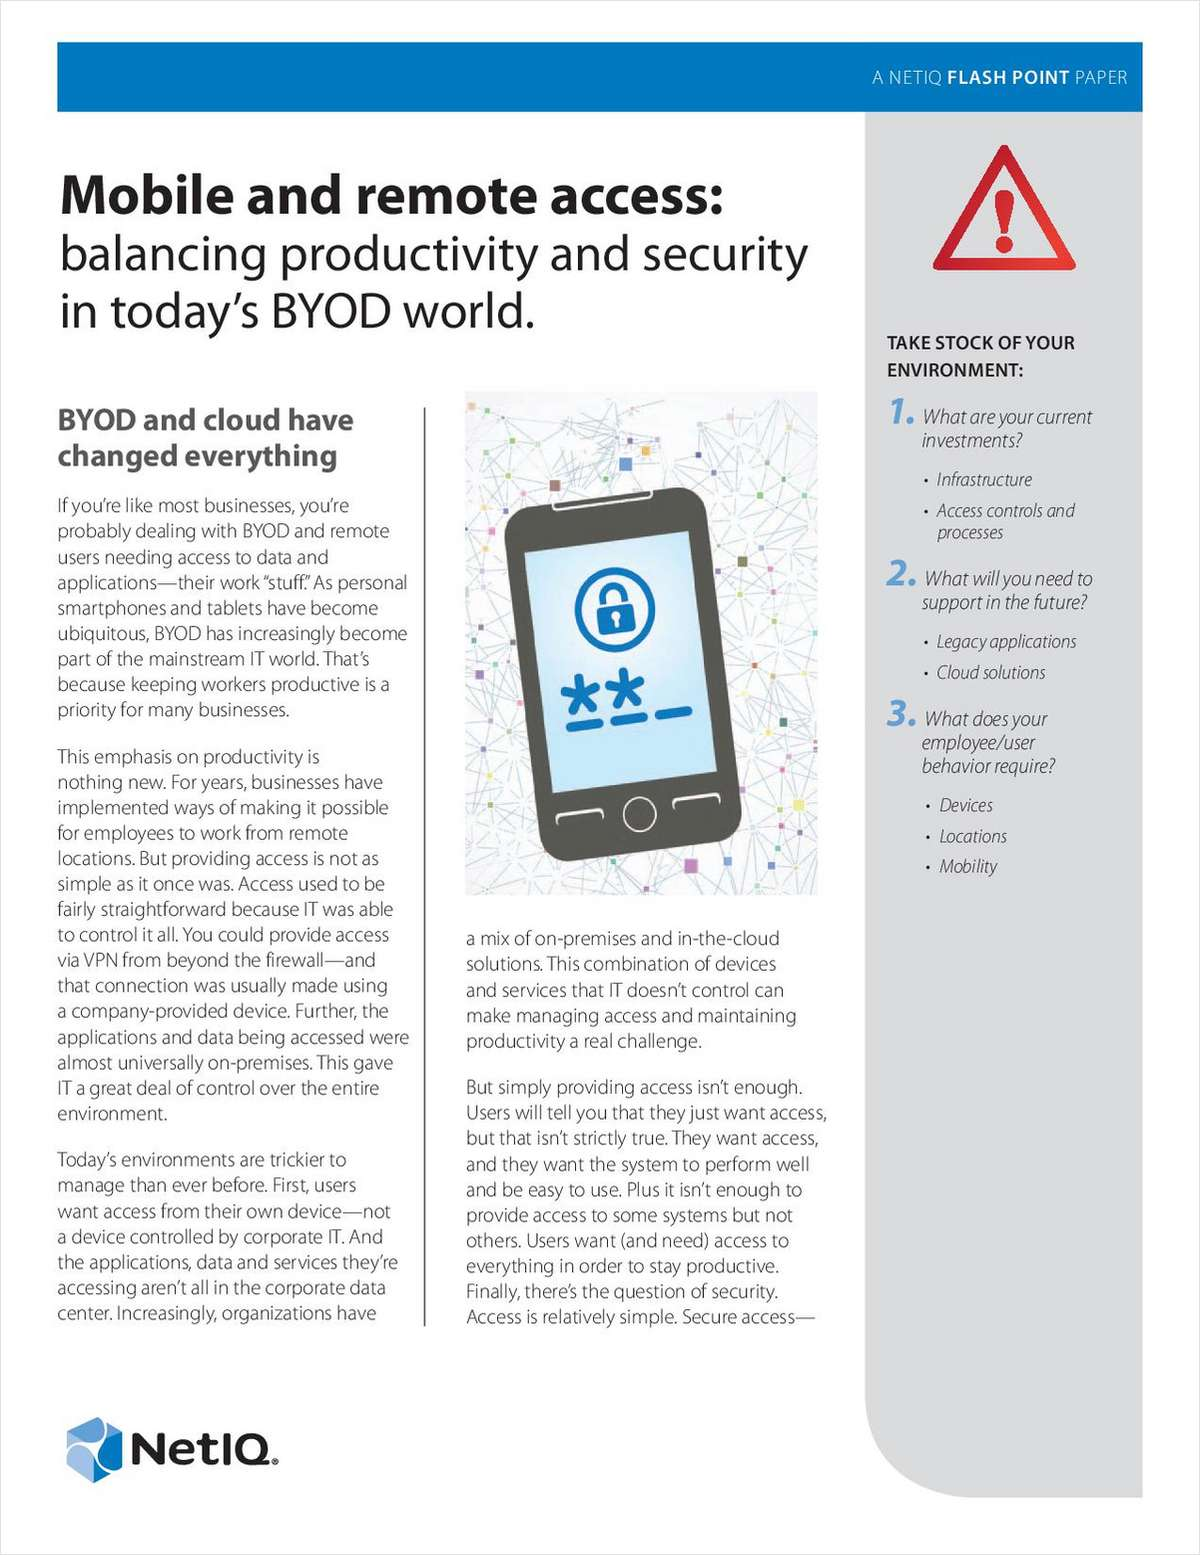 Mobile and Remote Access: Balancing Convenience and Security